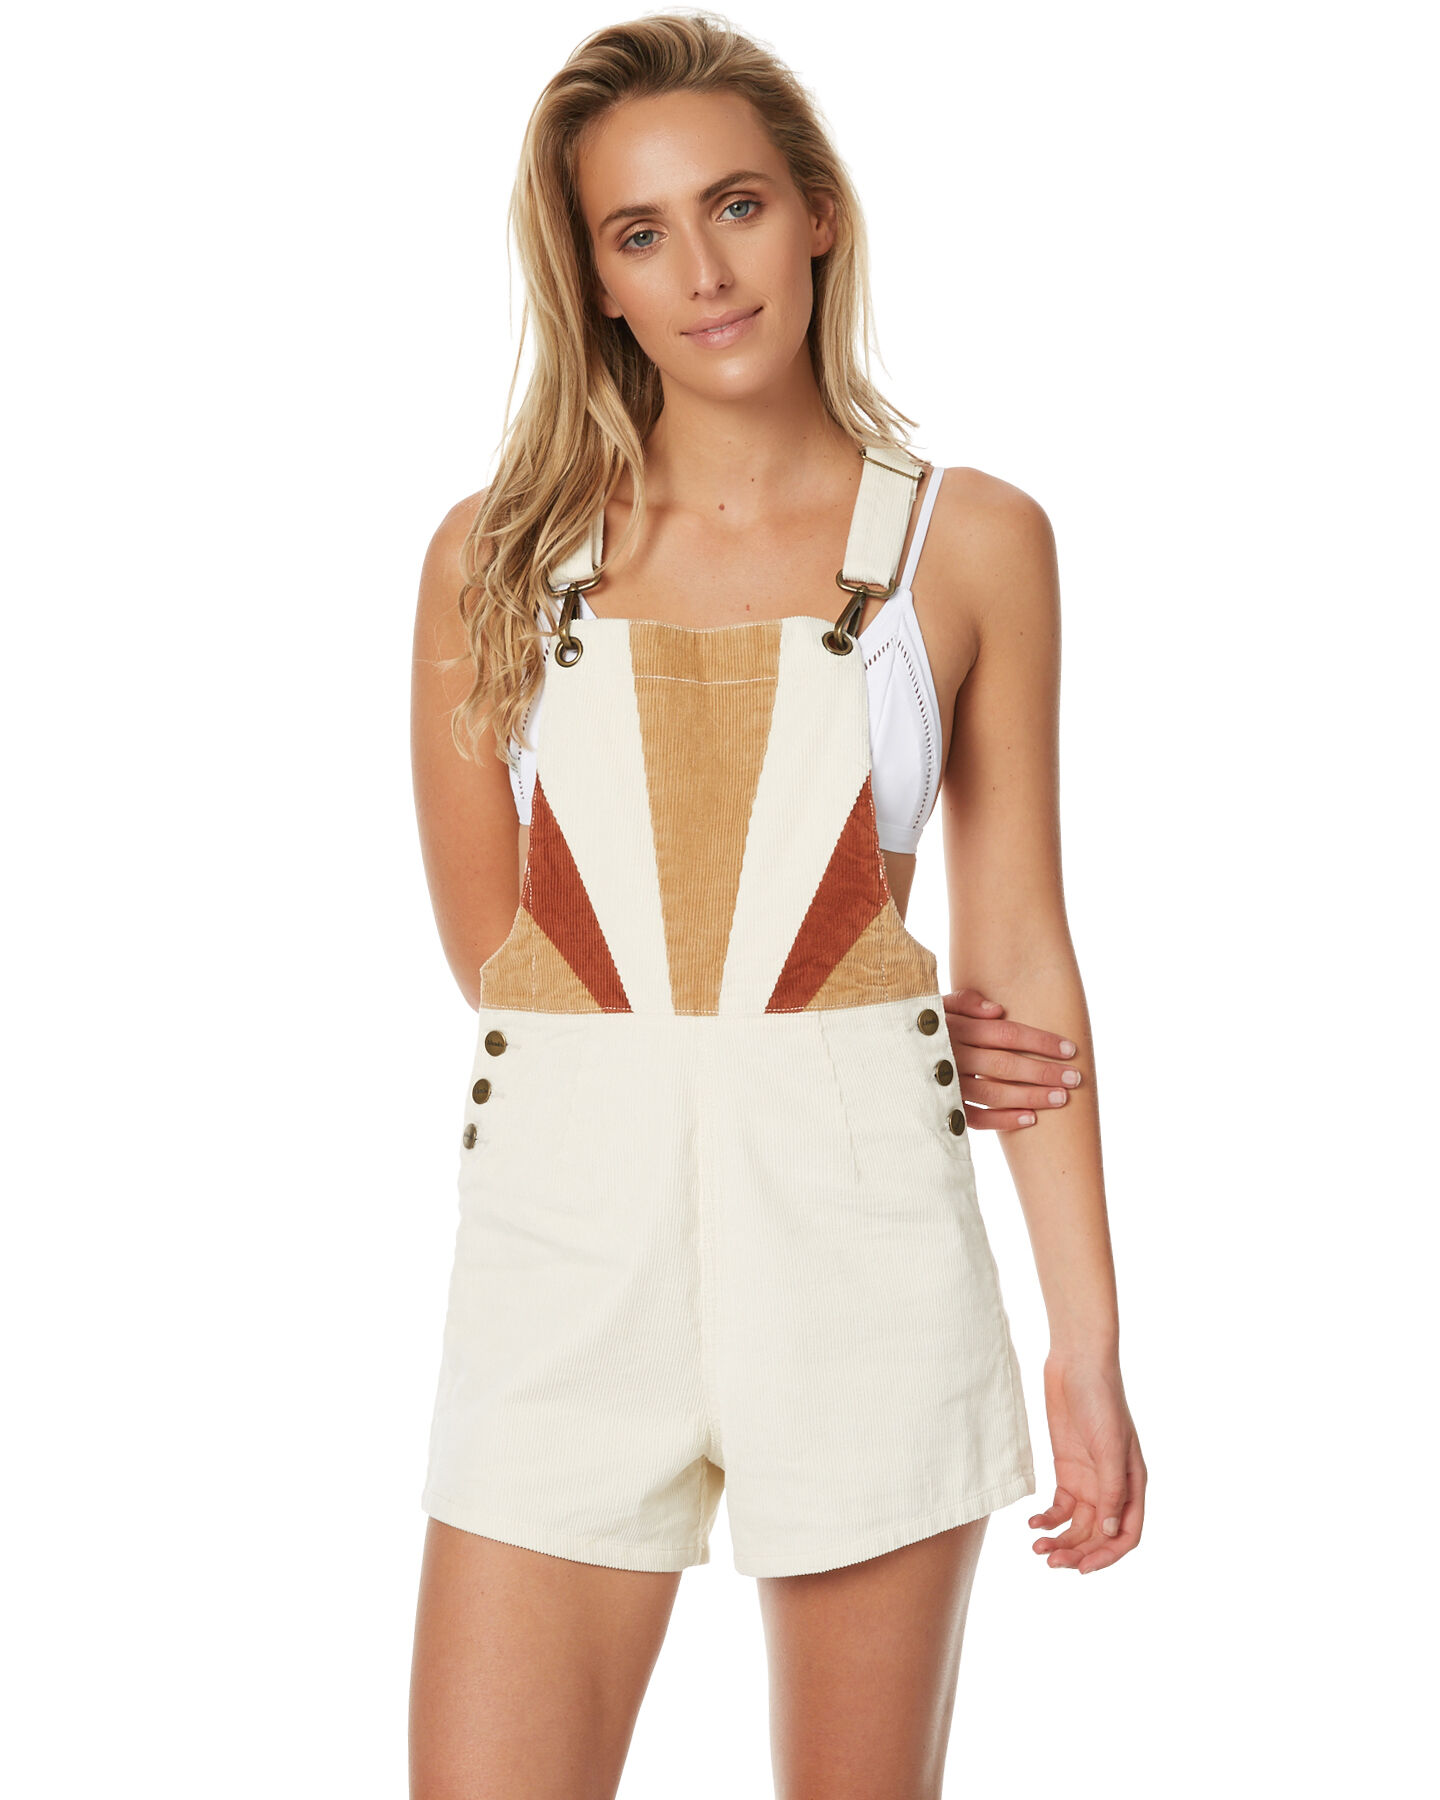 CREAM WOMENS CLOTHING AFENDS PLAYSUITS OVERALLS 51 02 095CRM_1?sw=263&sh=329&sm=fit women's clothing, swimwear, footwear, accessories & more,Bella D Womens Clothing